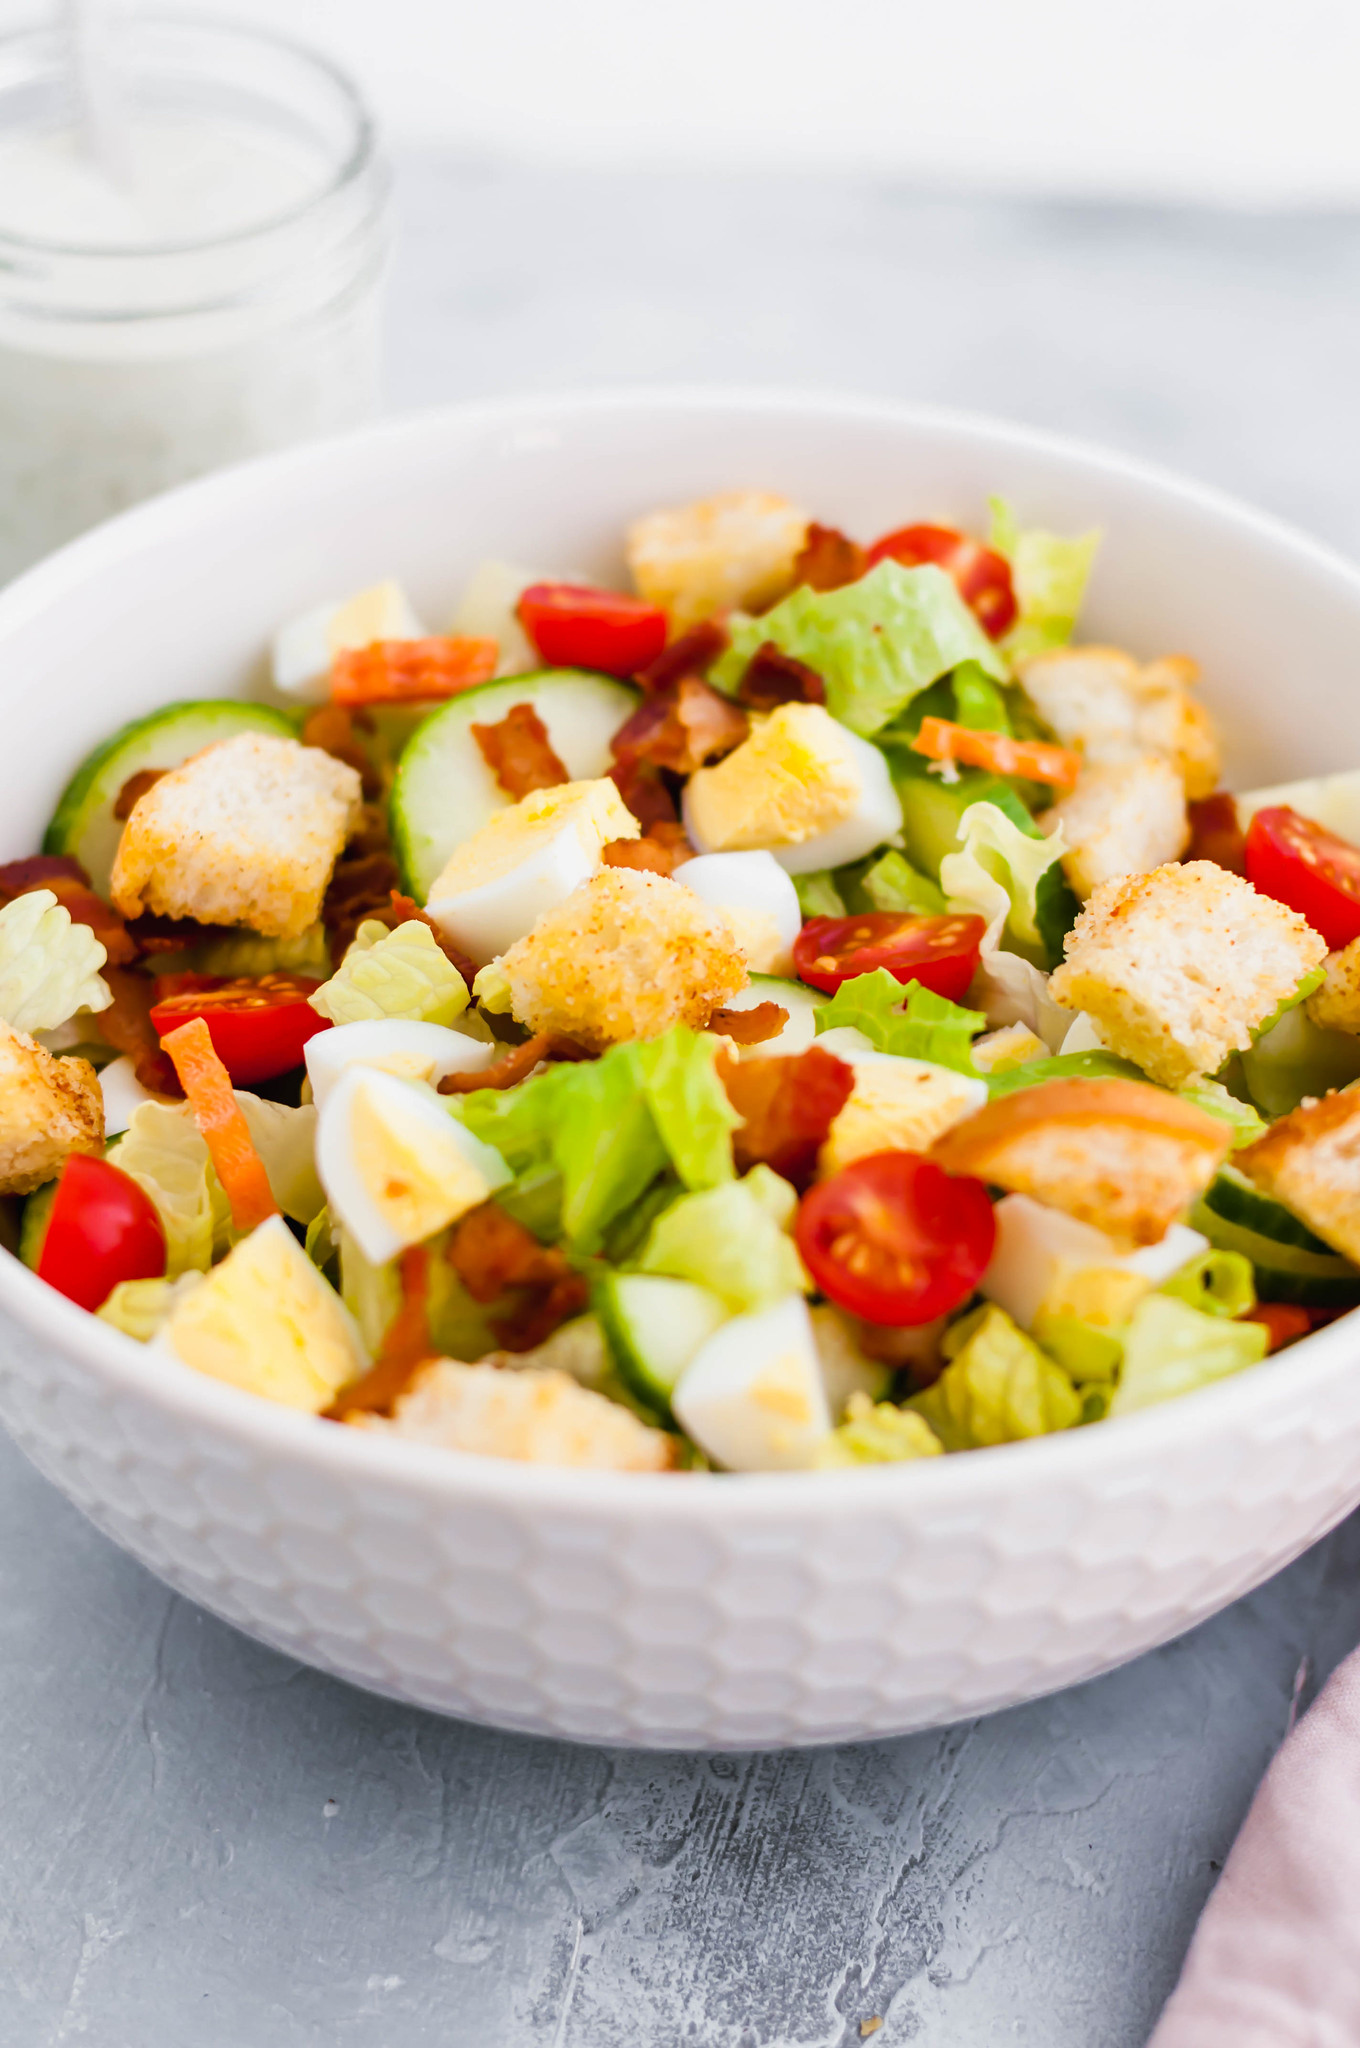 Sometimes you just need a simple side salad to round out your meal. Get ready for the best side salad using simple ingredients you already have in your refrigerator.